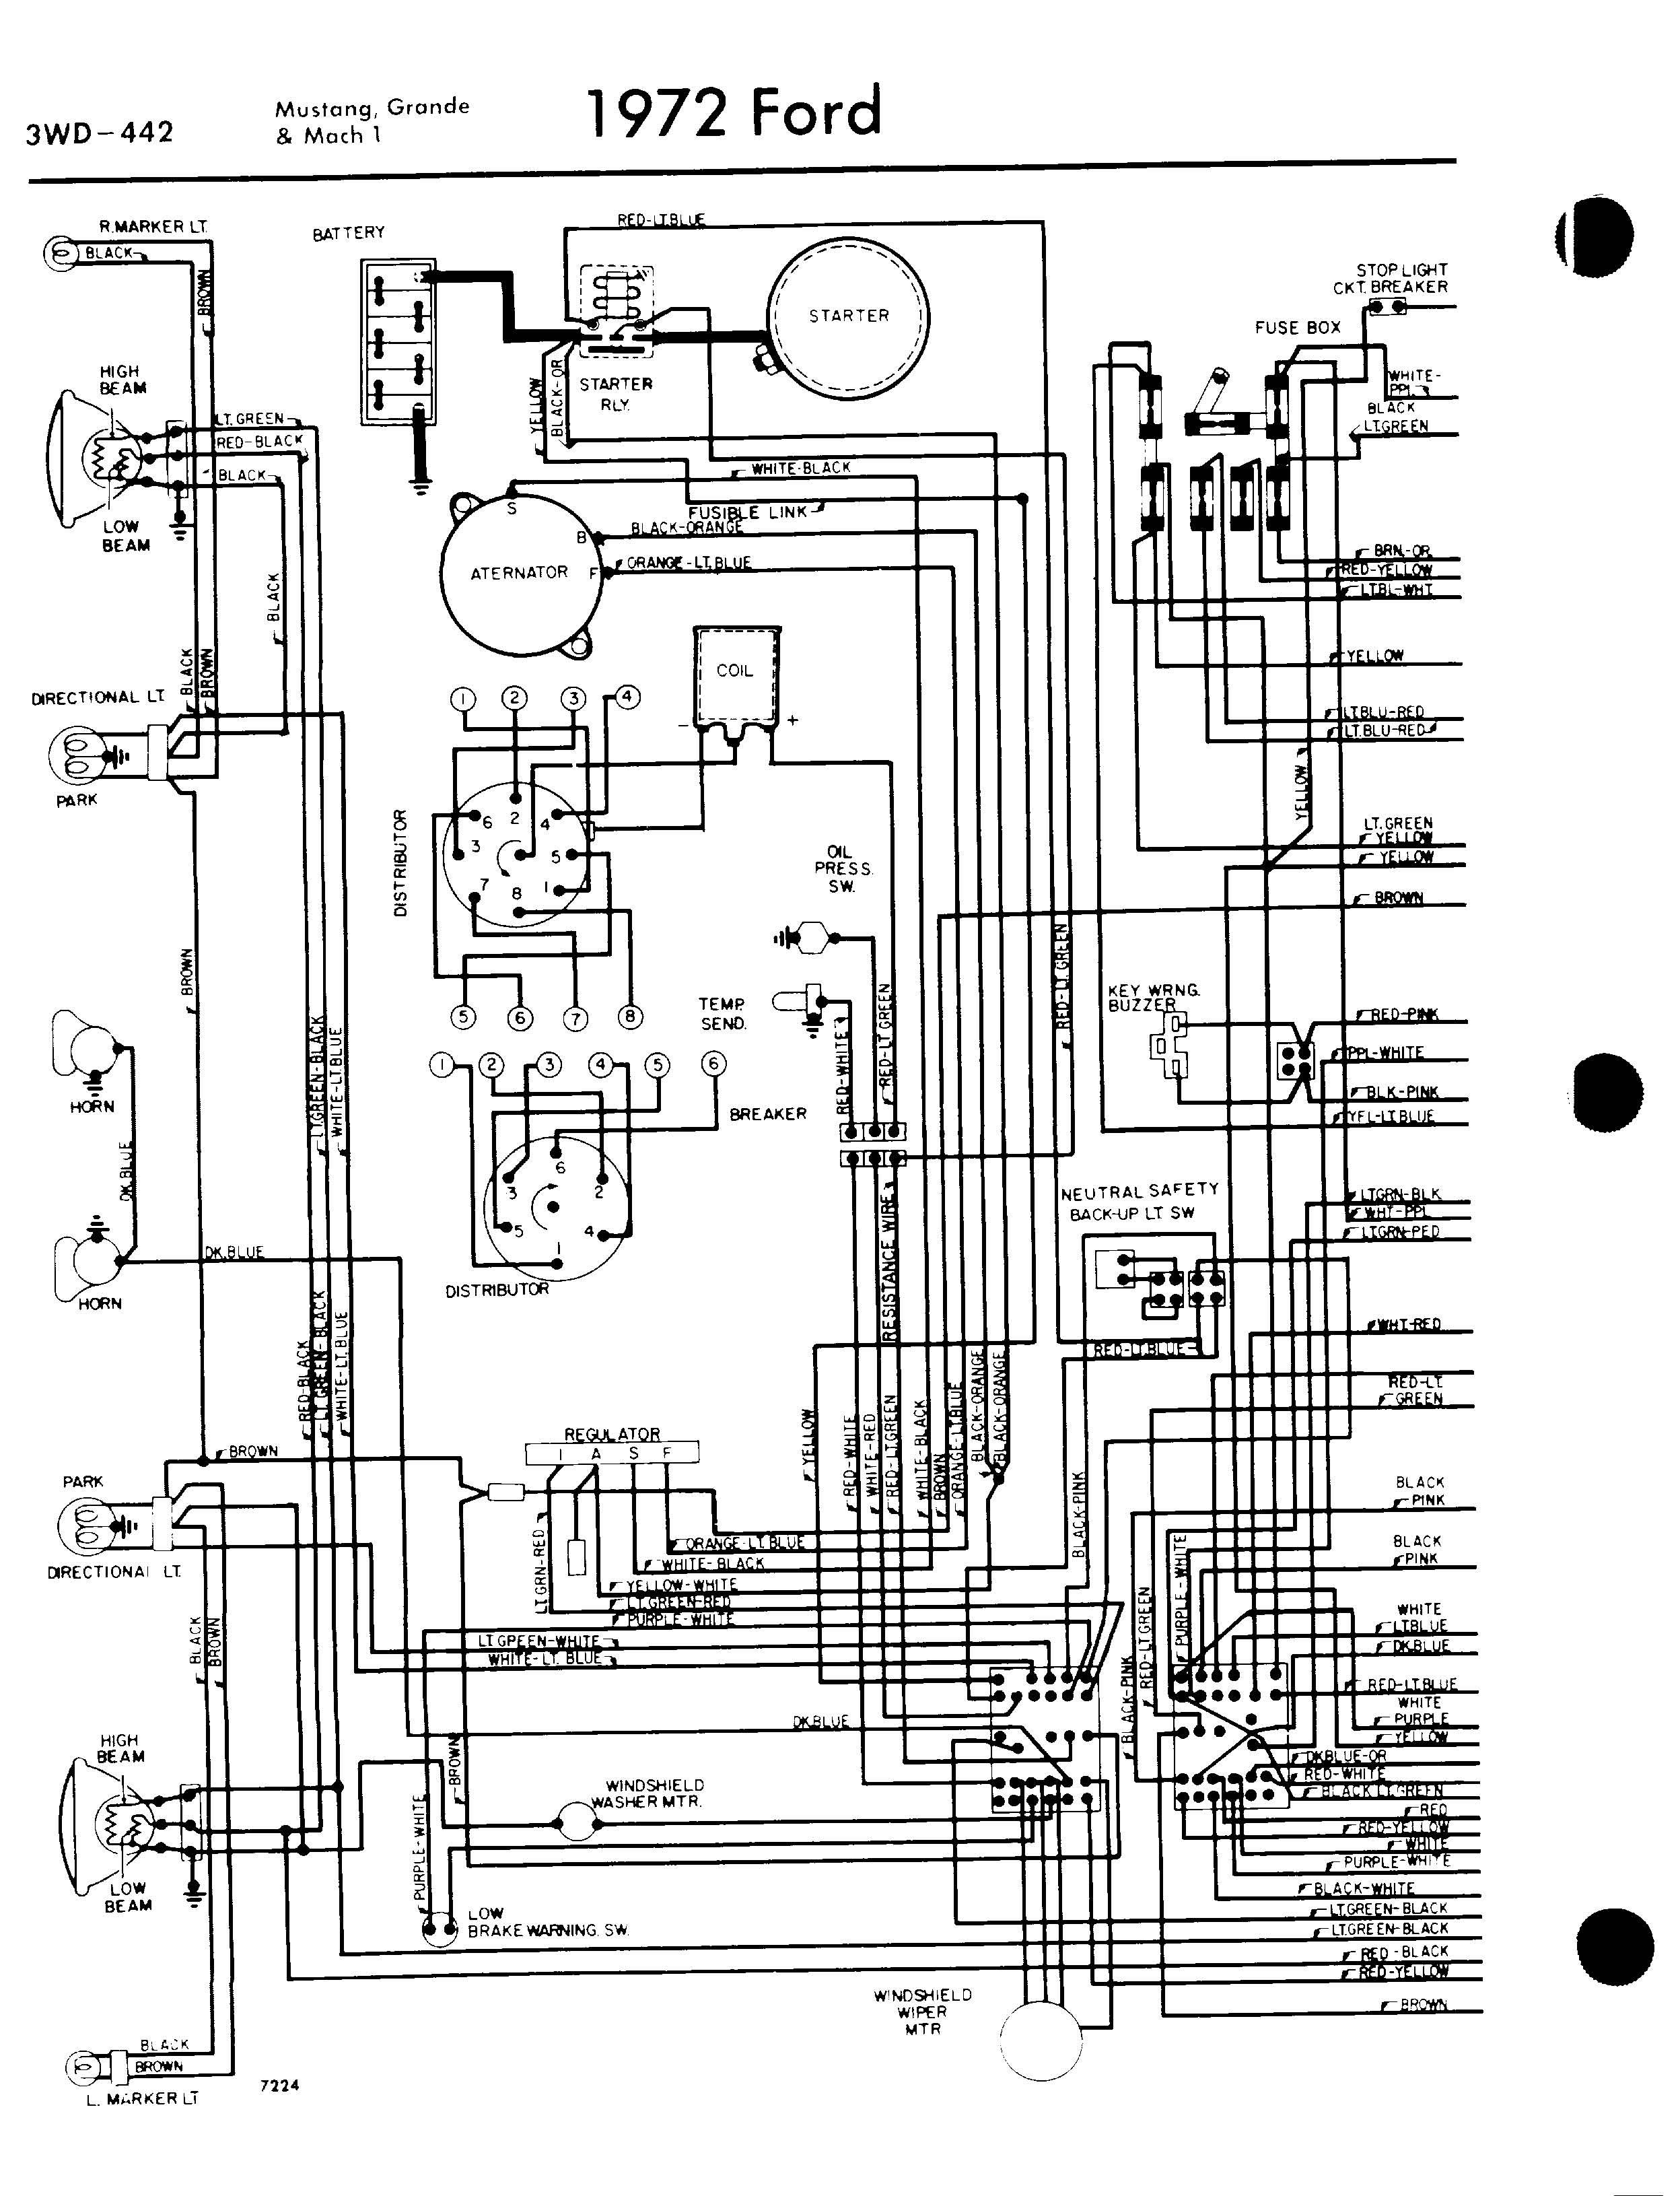 1972 Ford Maverick Wiring Diagram Data Transit Diagrams On 1990 Van Starter